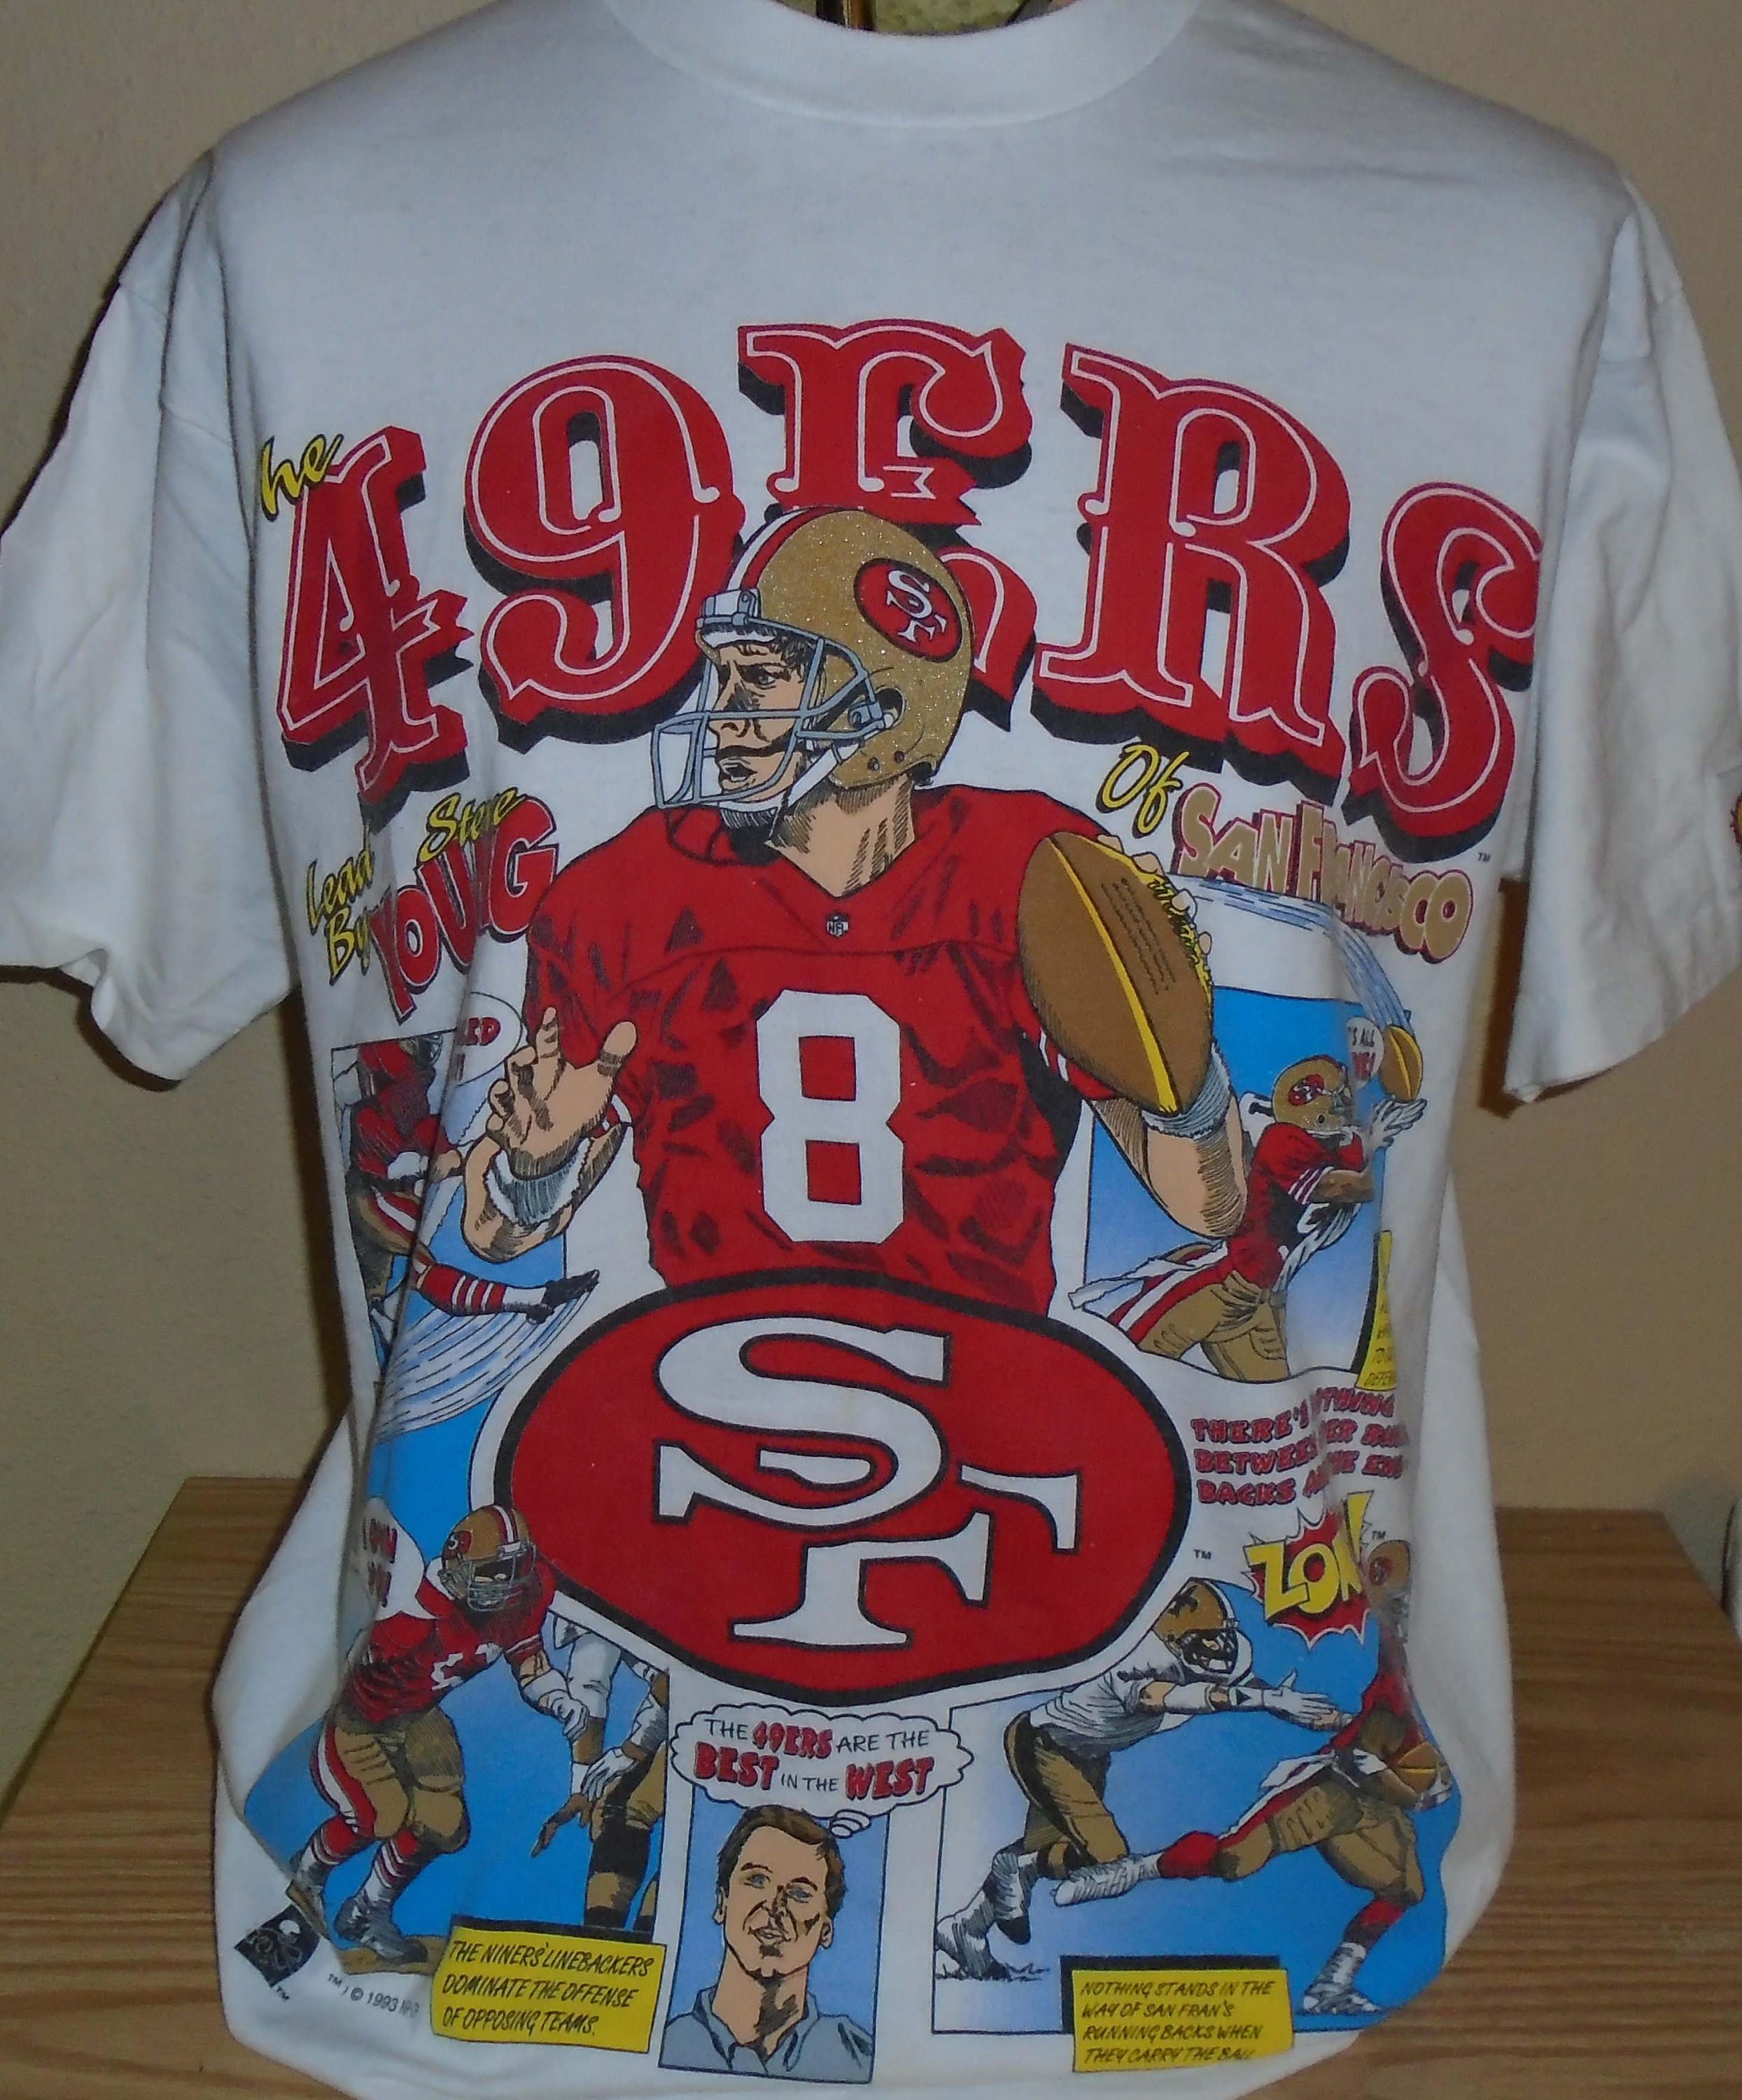 Vintage 1993 San Francisco 49ers Football Steve Young T Shirt Large By Vintagerhino247 On Etsy Vintage Tshirts San Francisco 49ers Football Etsy